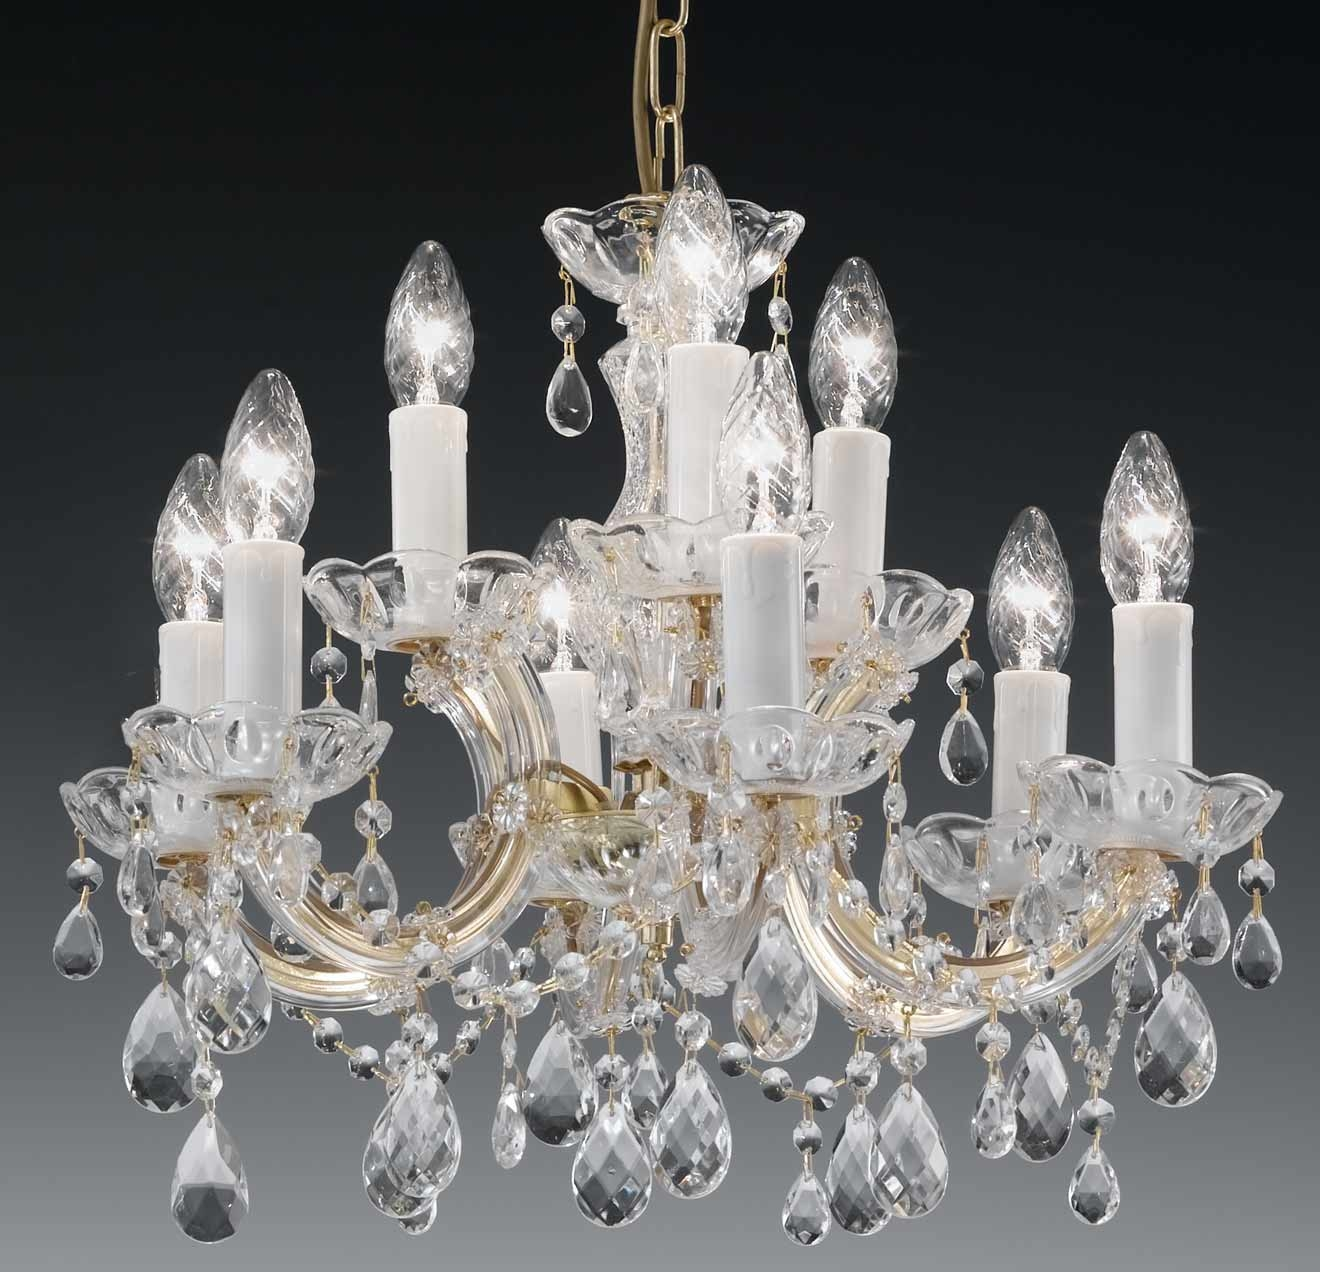 The Italian Chandelier Regarding Italian Chandeliers (#12 of 12)